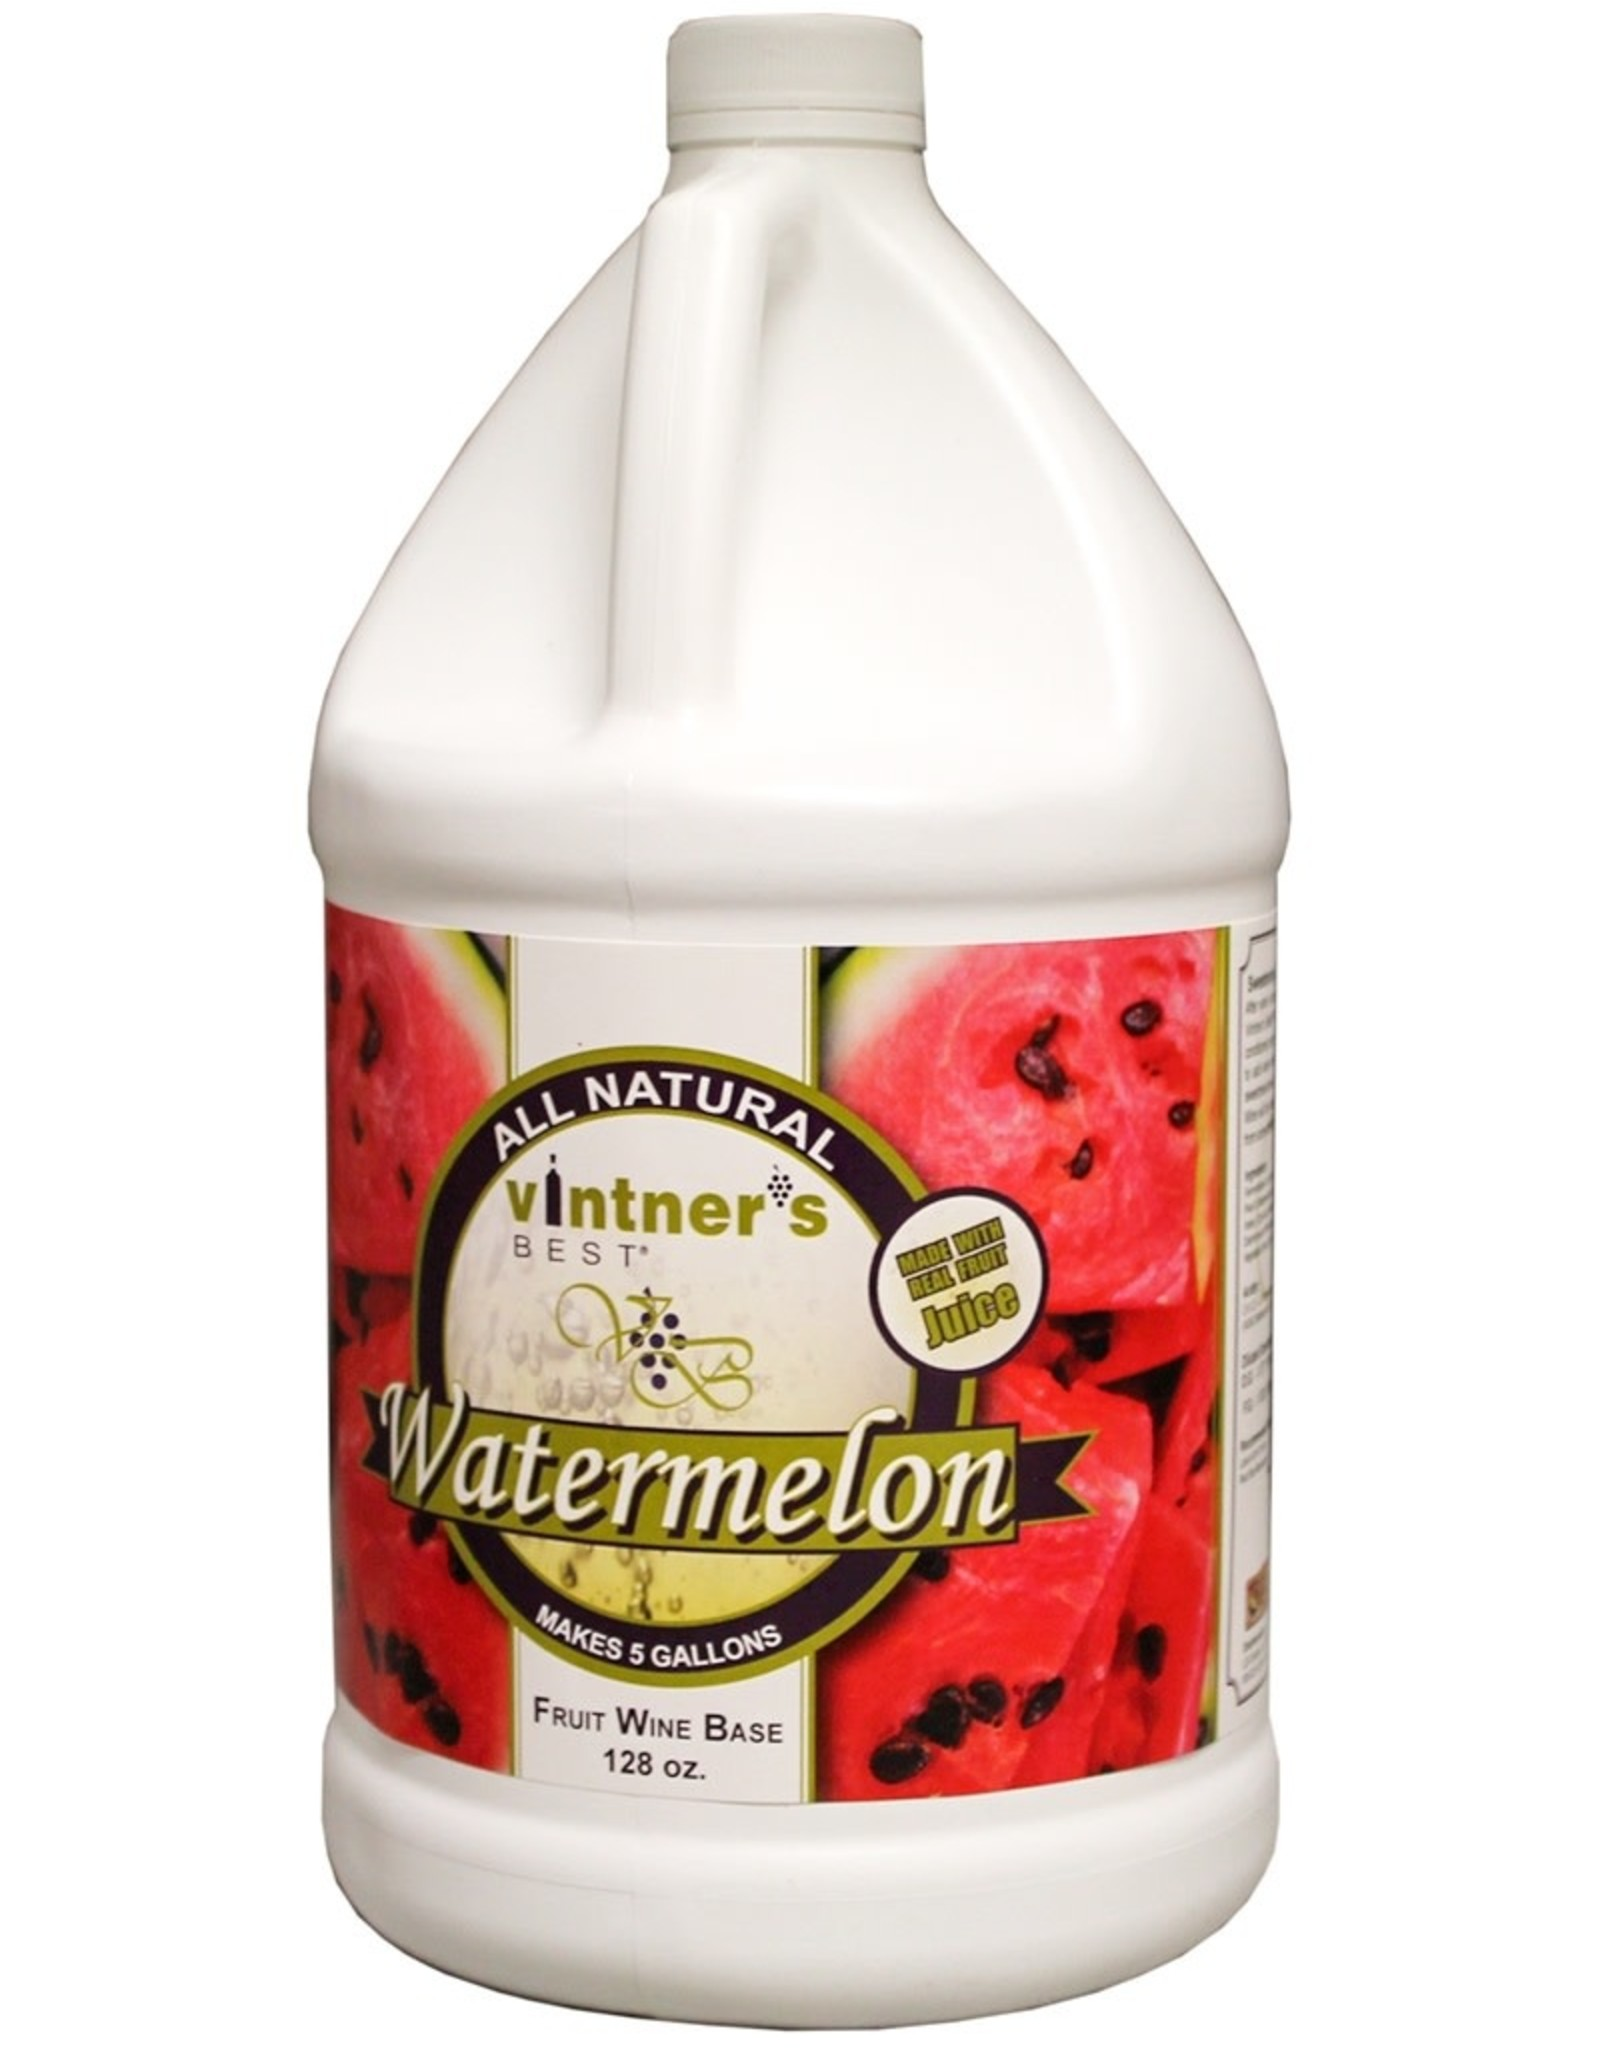 WATERMELON FRUIT WINE BASE 128 OZ (1 GAL